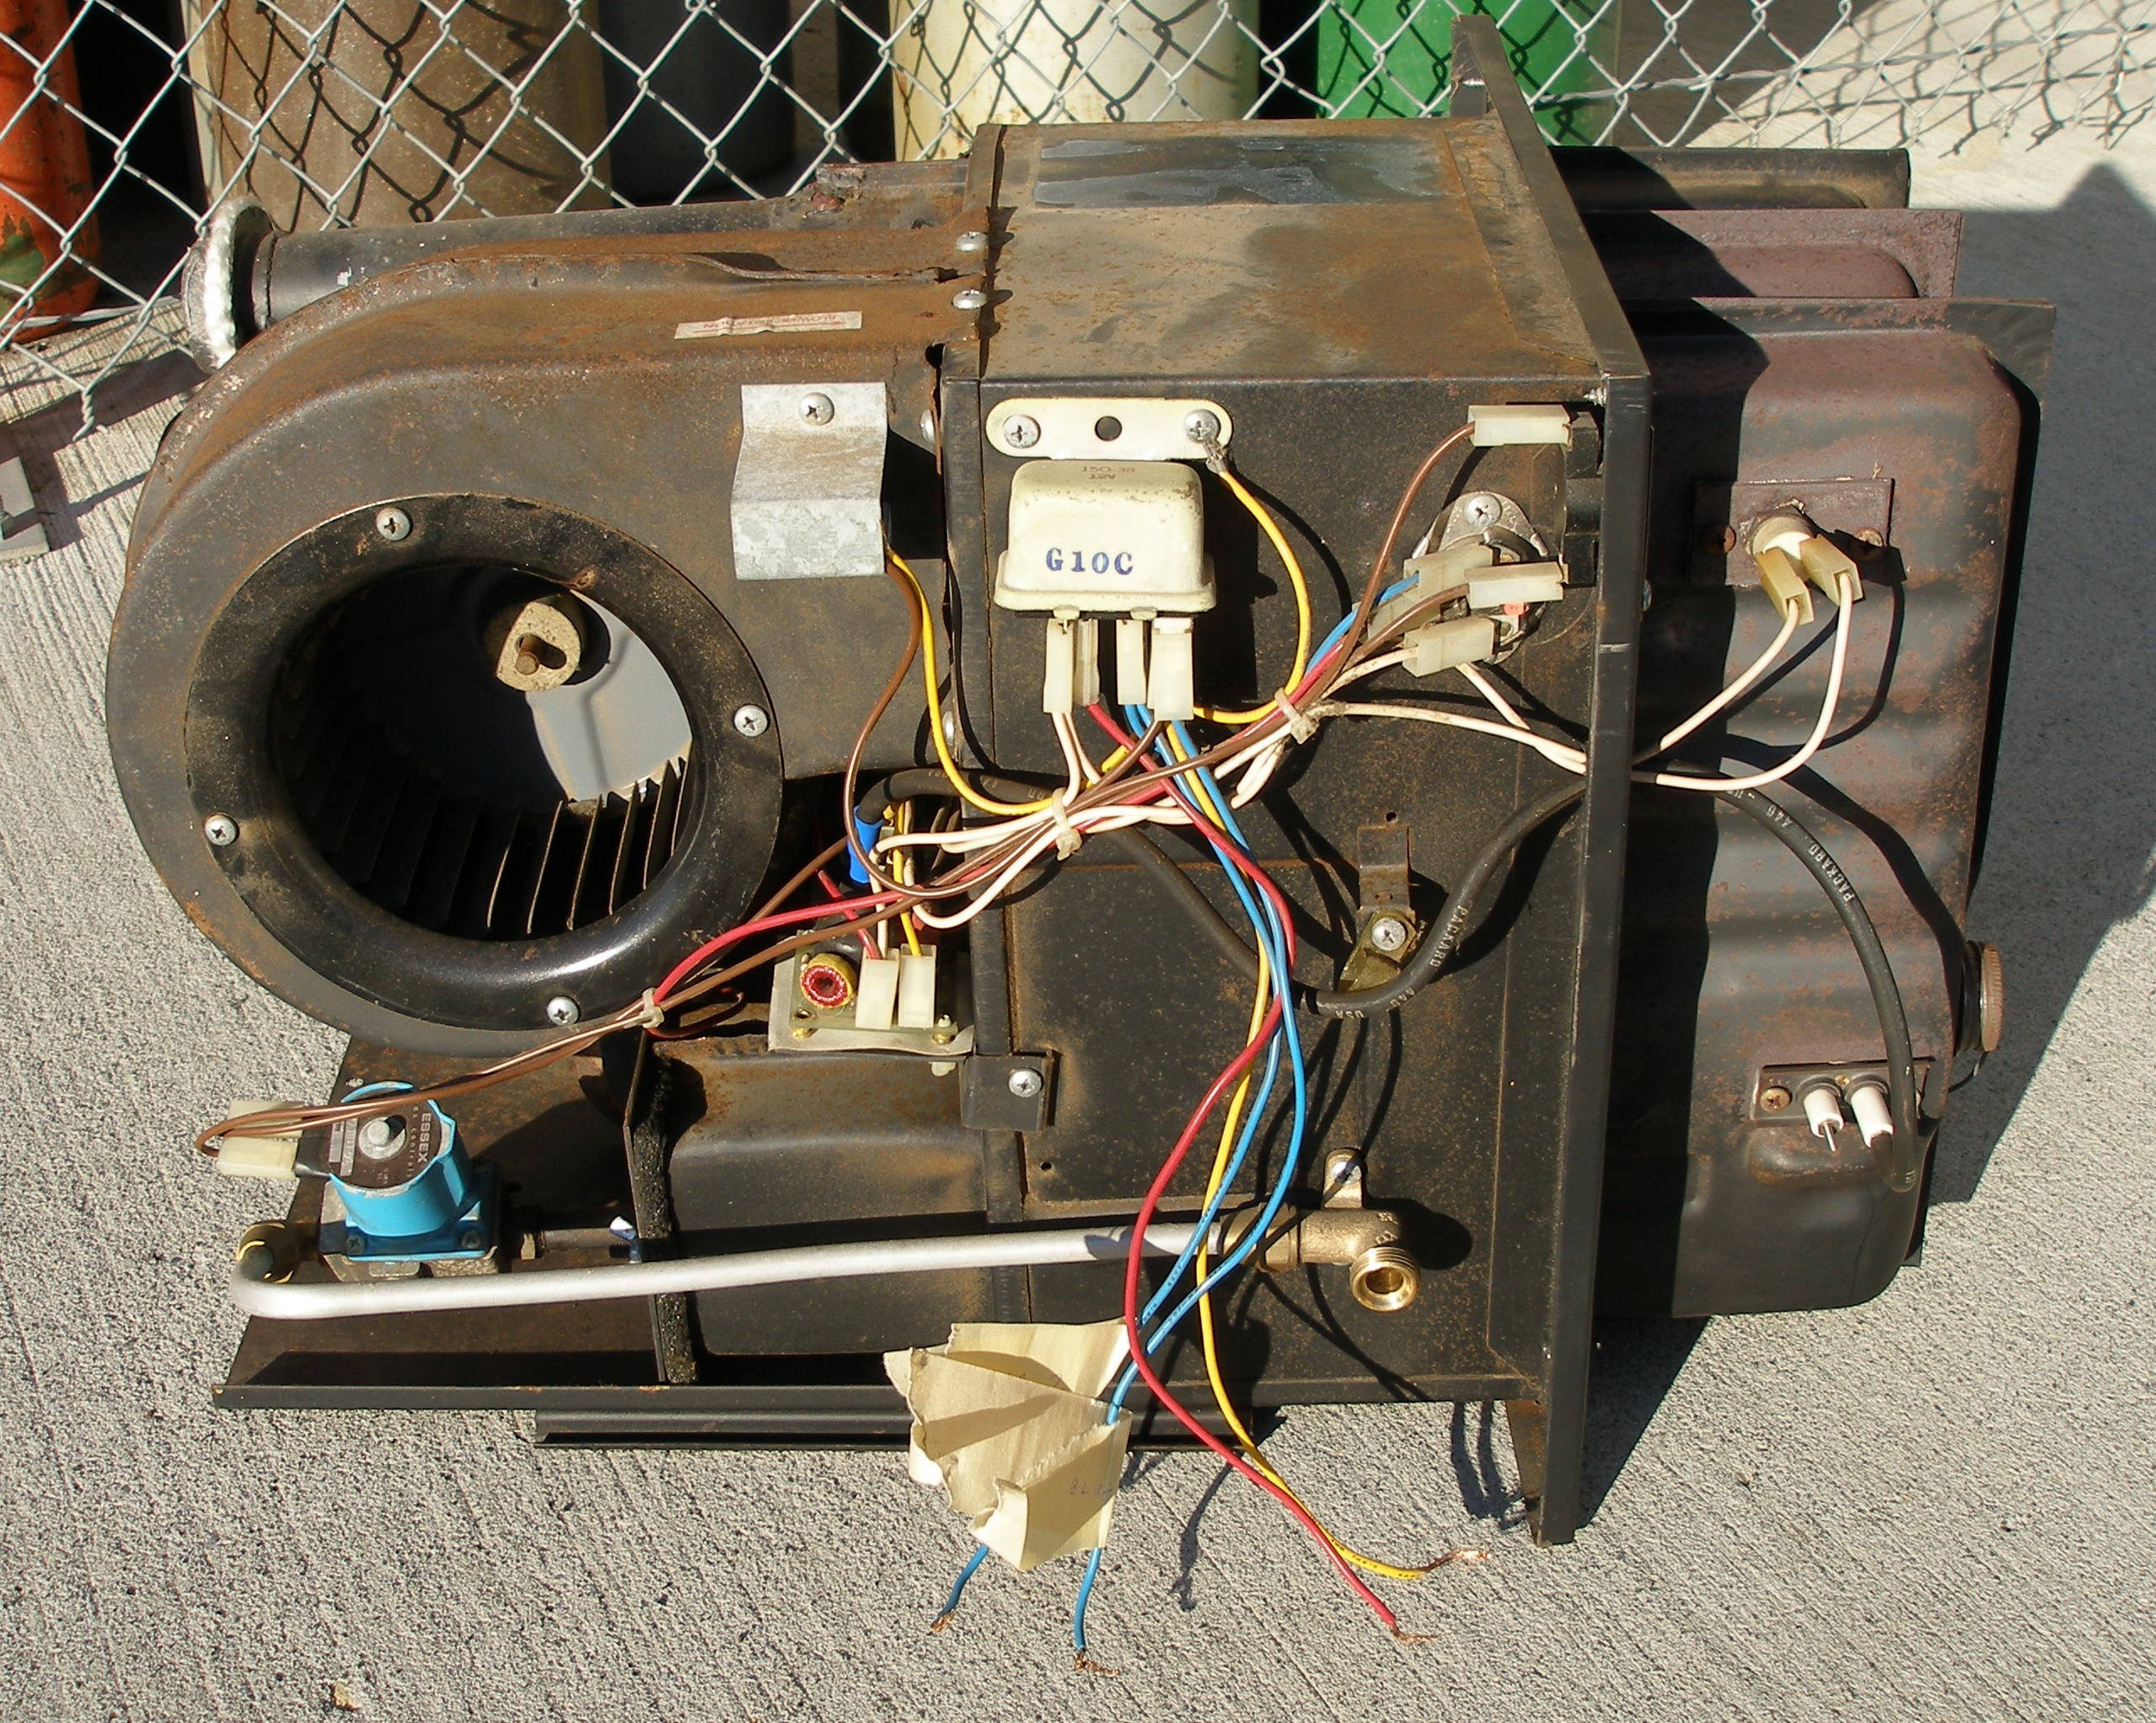 Nissandiesel Forums View Topic Suburban Rv Furnace Model Nt22ce Wiring Image